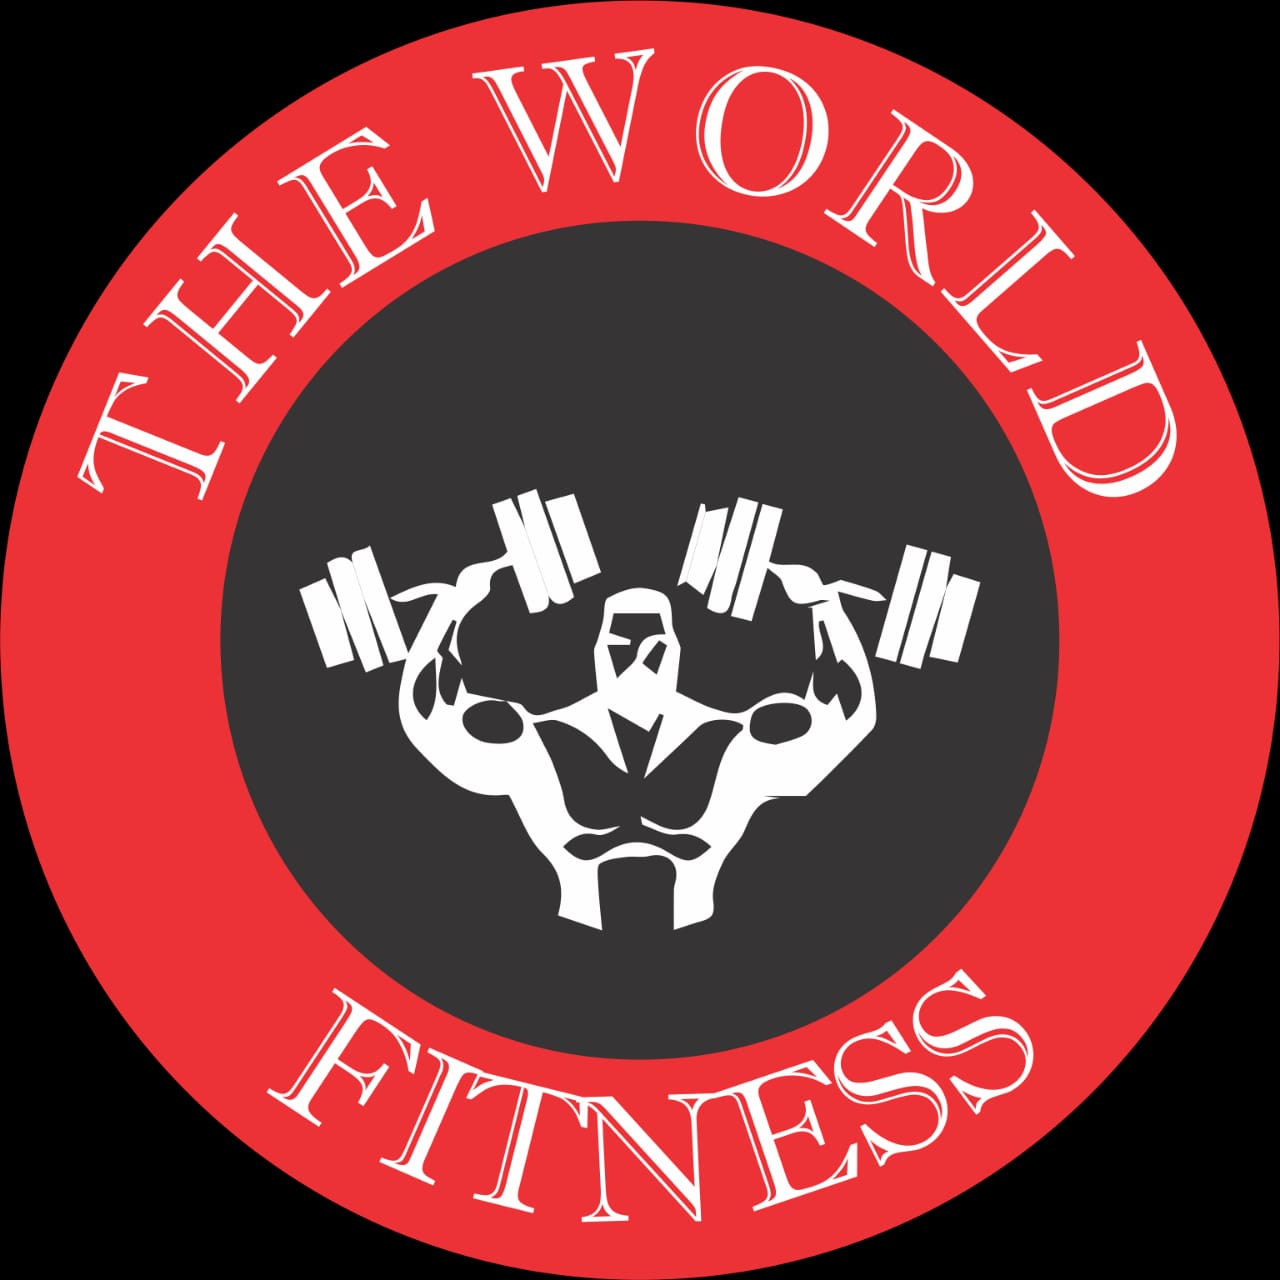 The World Fitness Kondhwa